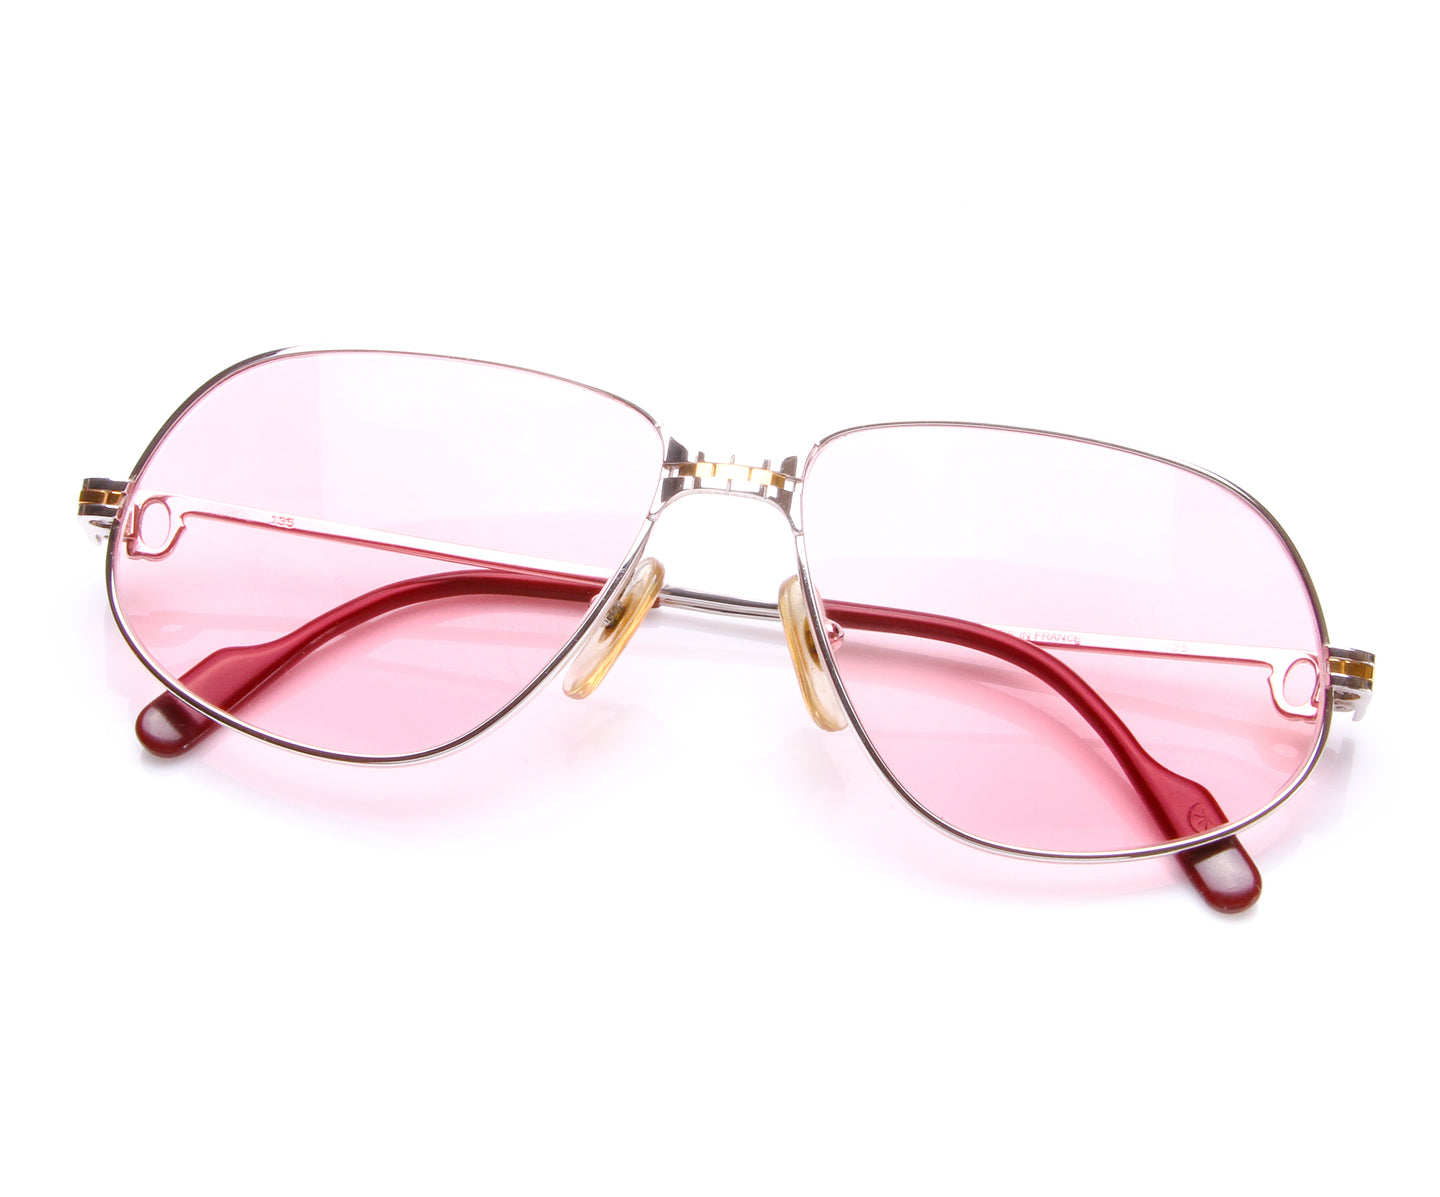 Cartier Panthere 2-Tone (Pink), Cartier , glasses frames, eyeglasses online, eyeglass frames, mens glasses, womens glasses, buy glasses online, designer eyeglasses, vintage sunglasses, retro sunglasses, vintage glasses, sunglass, eyeglass, glasses, lens, vintage frames company, vf